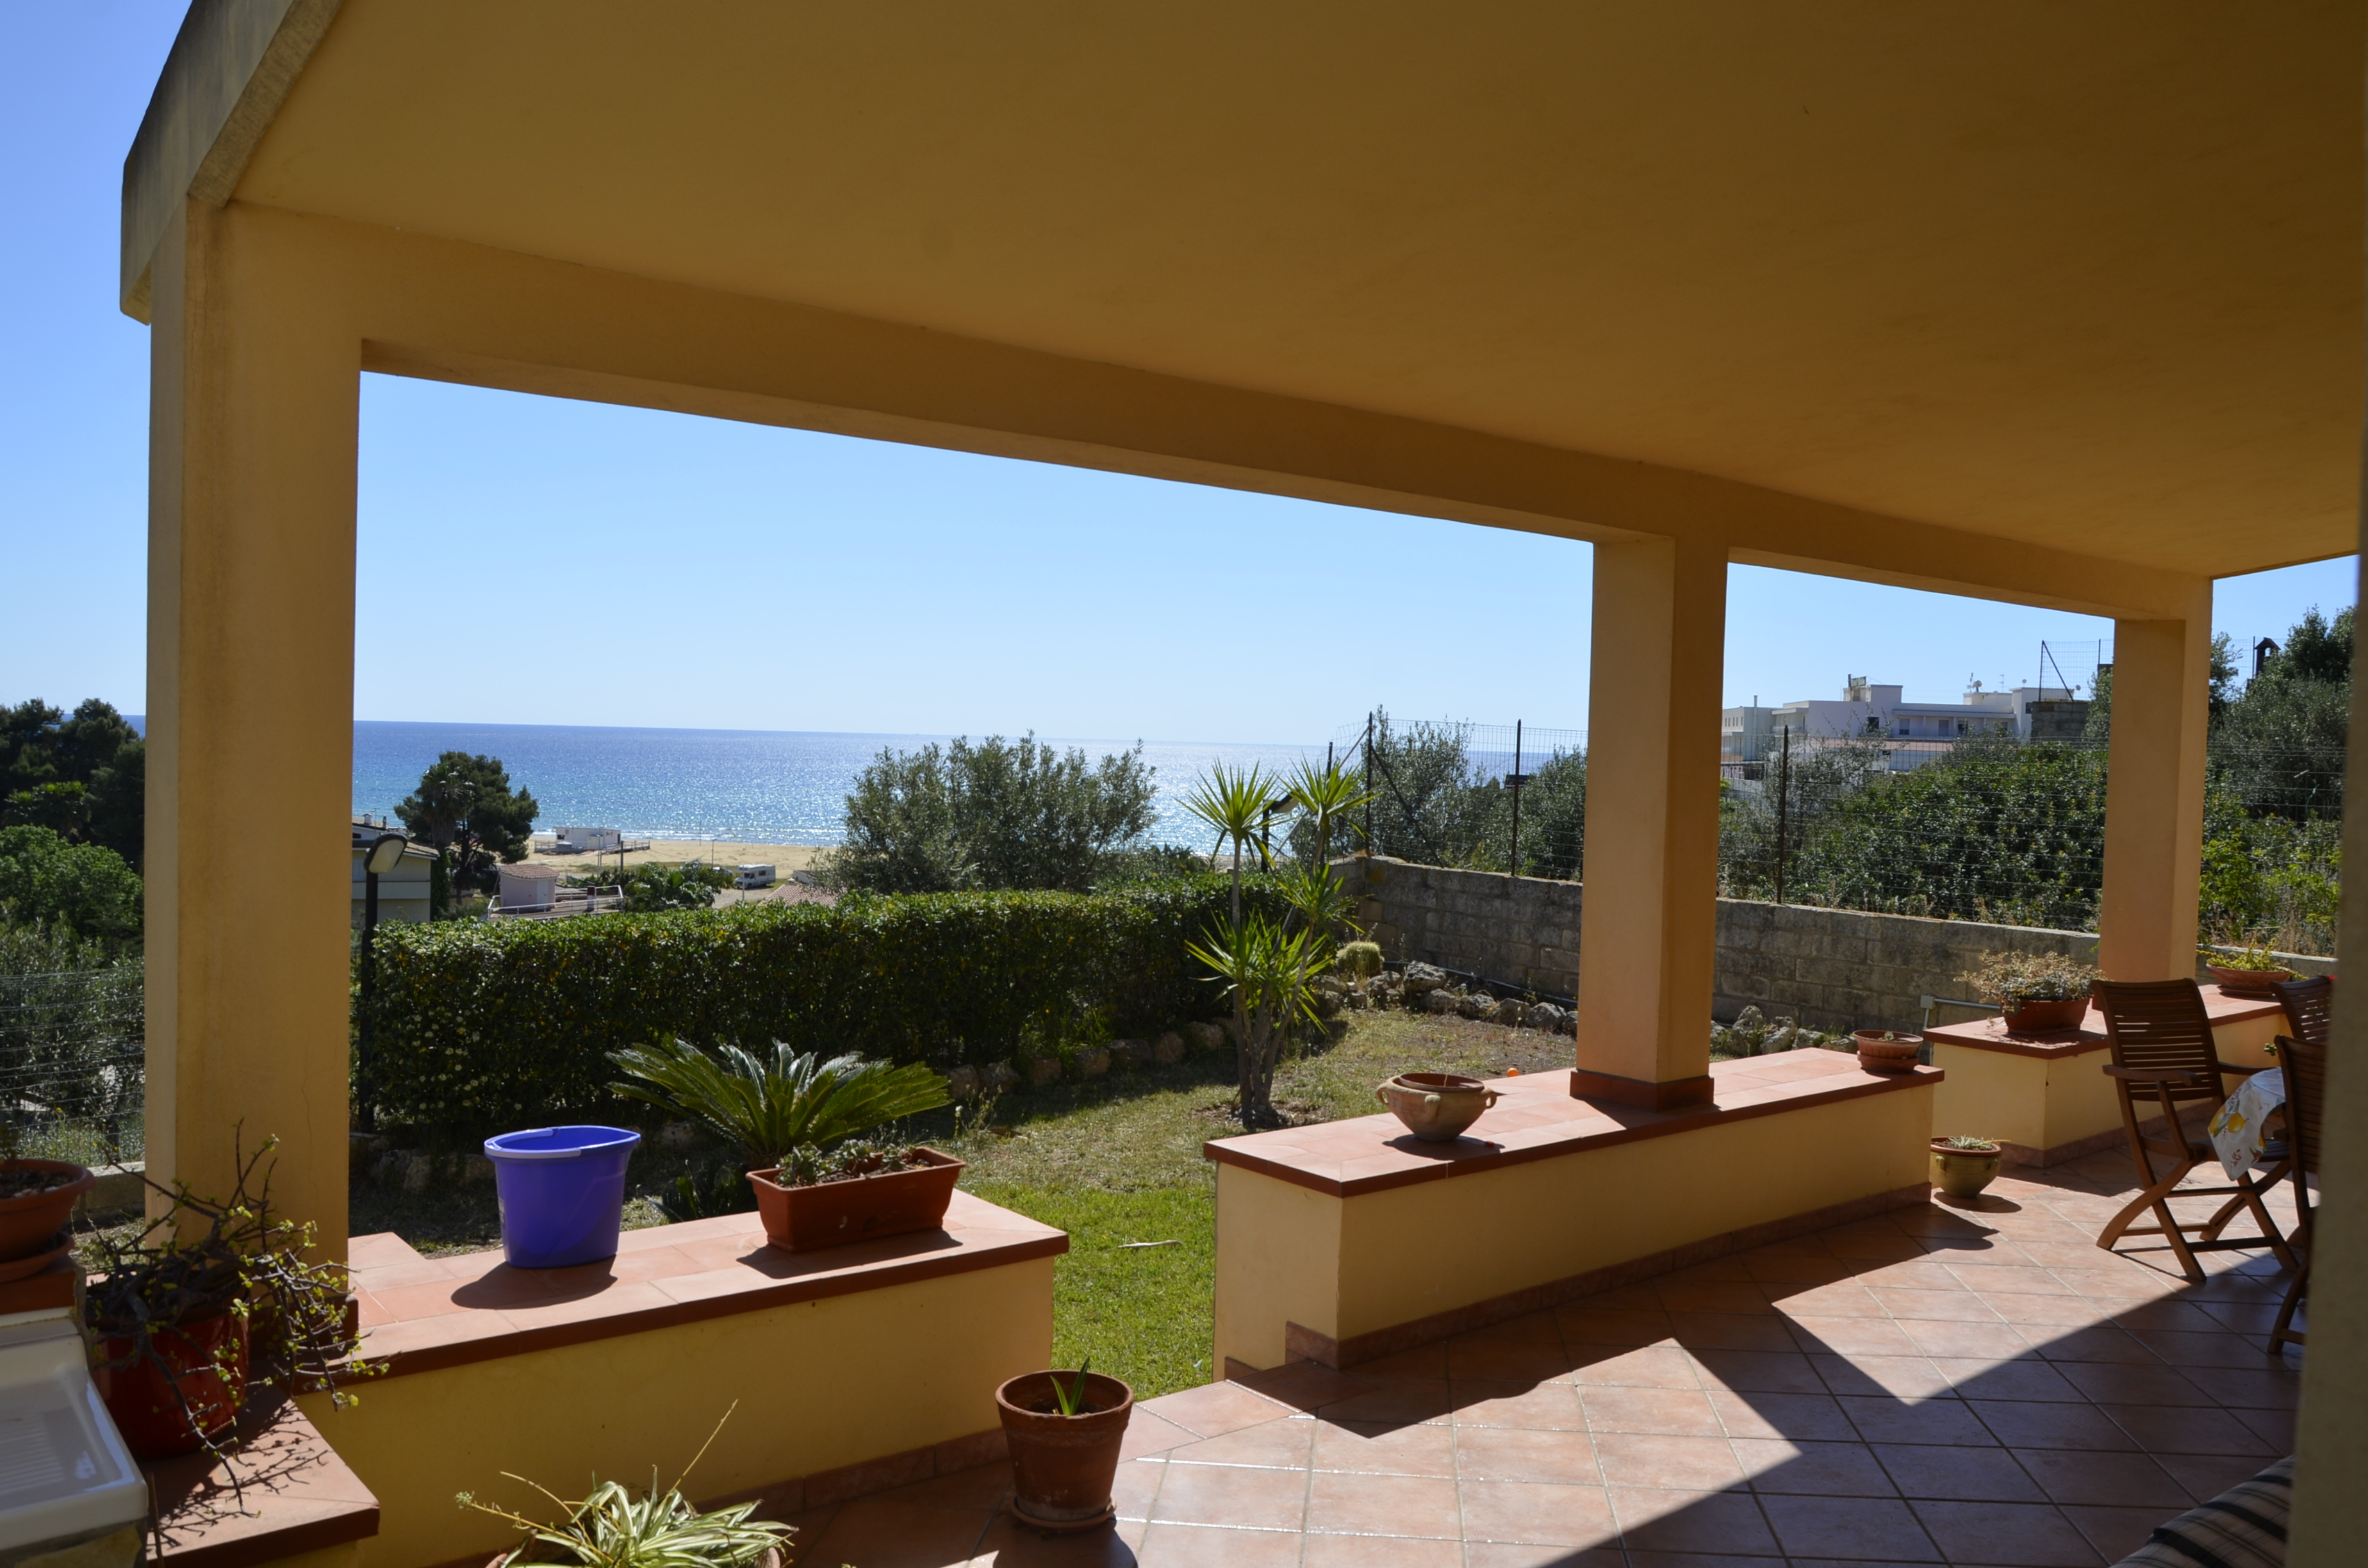 Lido di Noto – Two apartments in independent Villa a few meters from the sea